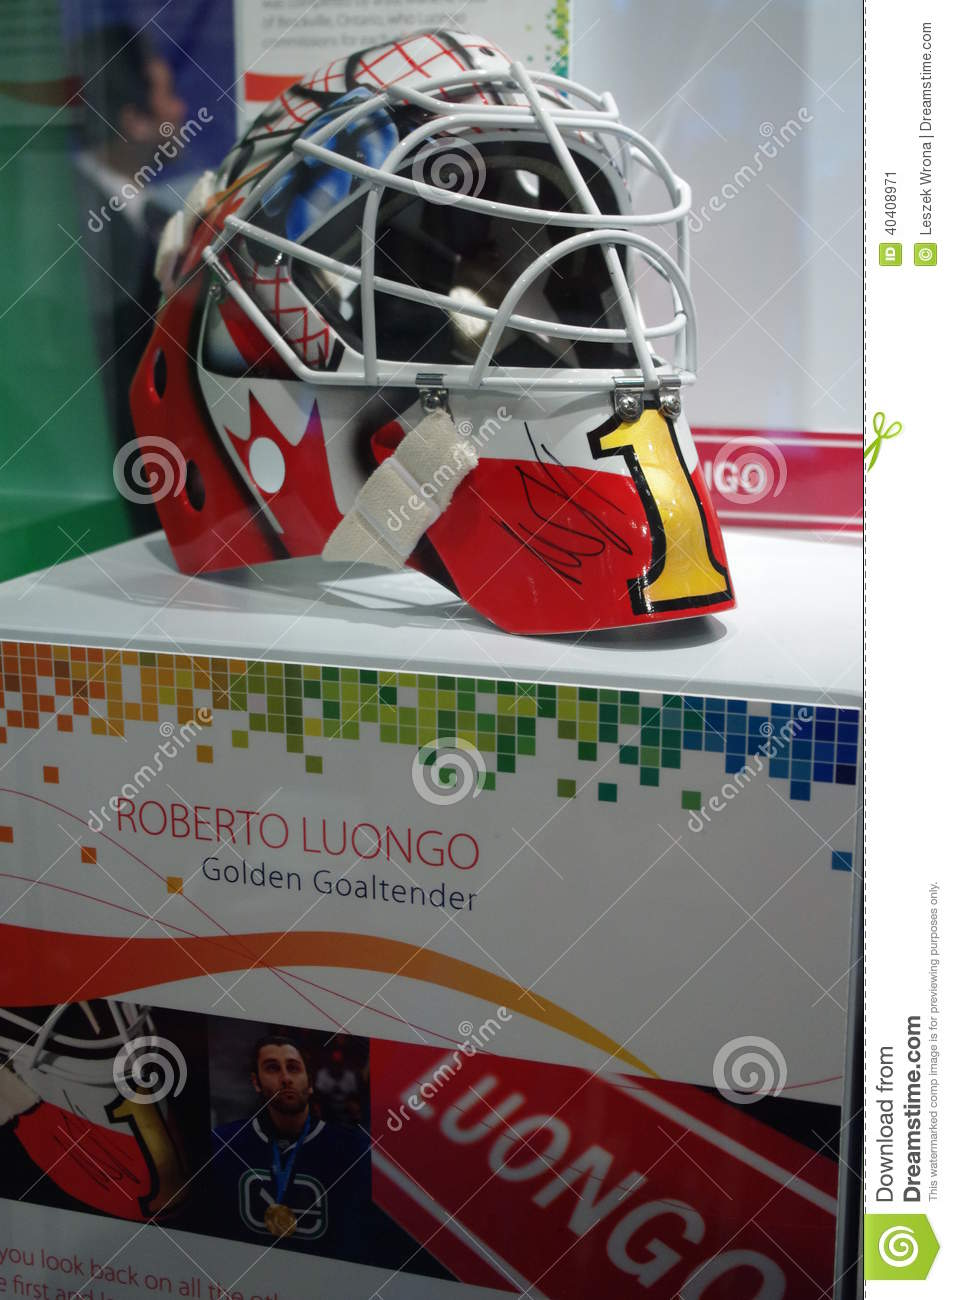 Roberto Luongo Helmet Editorial Photo Image Of Vancouver 40408971